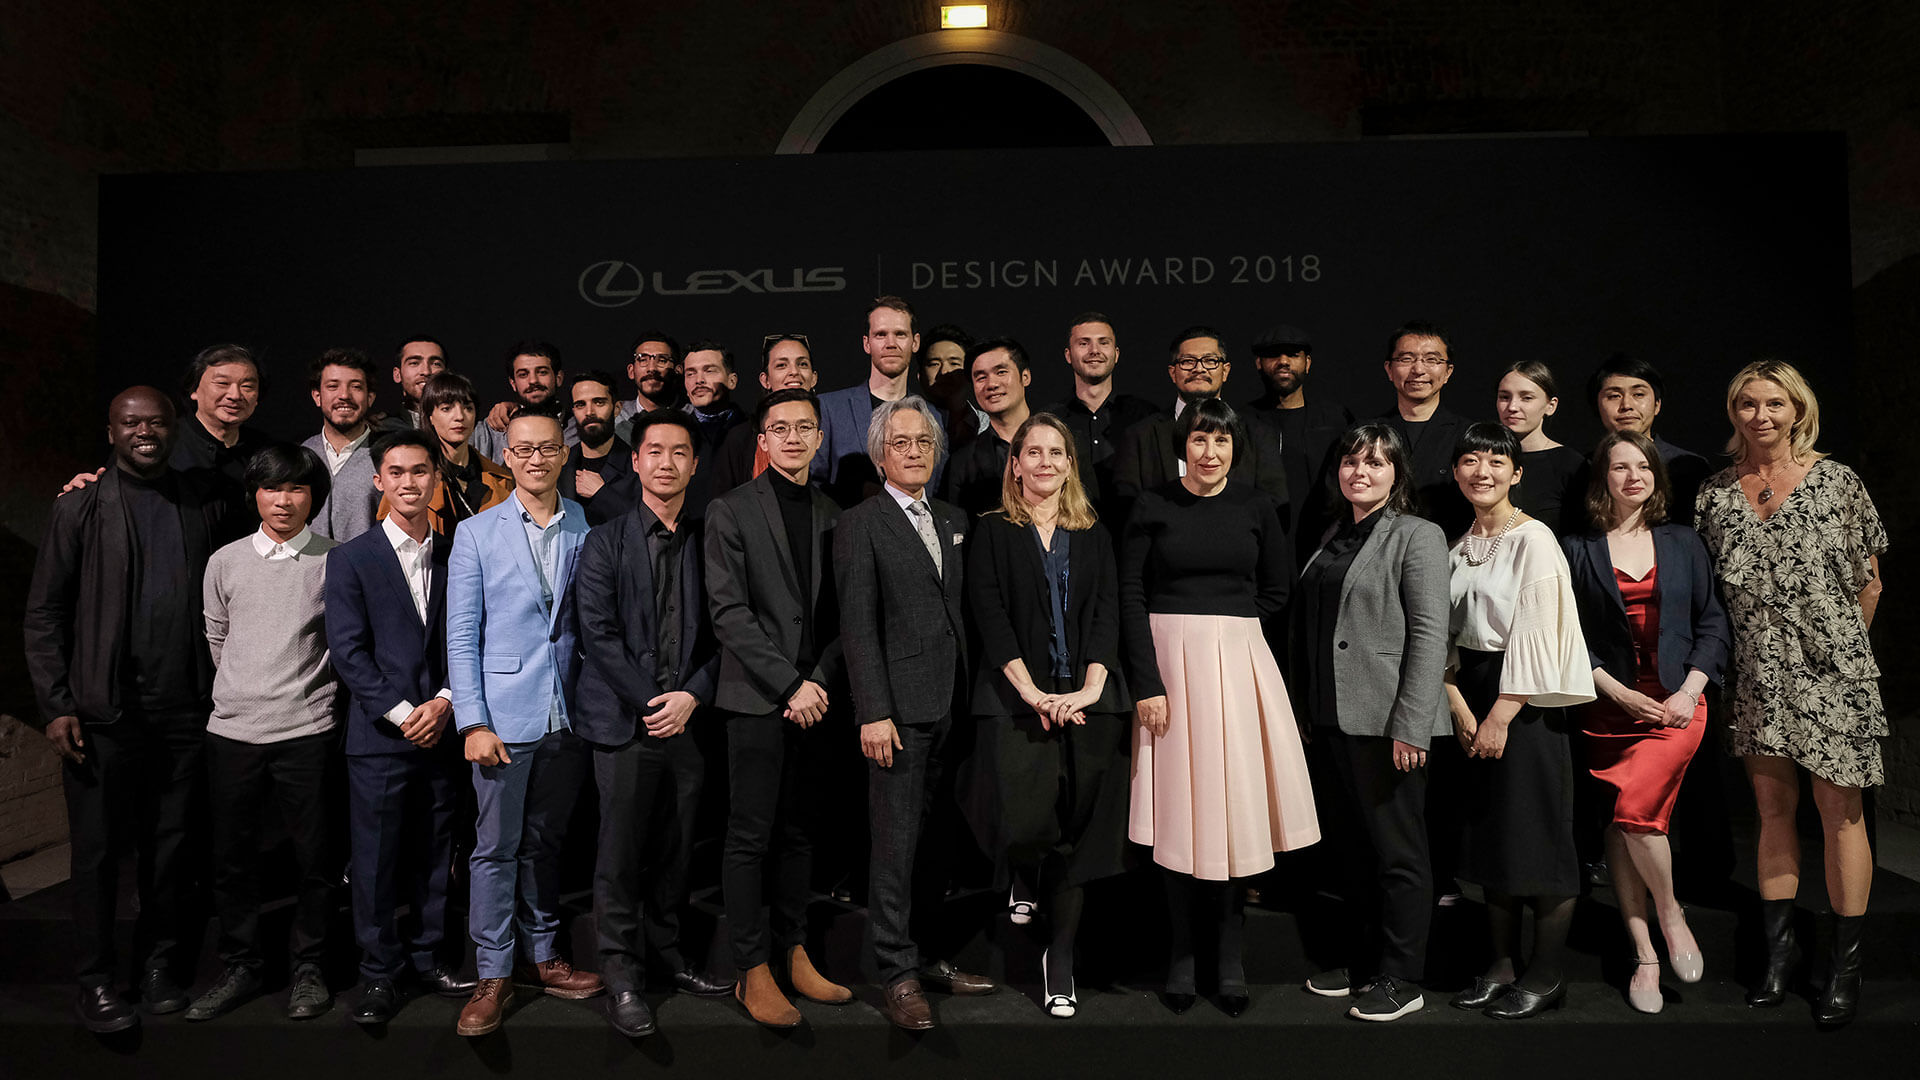 lexus lda 2018 winners article 002